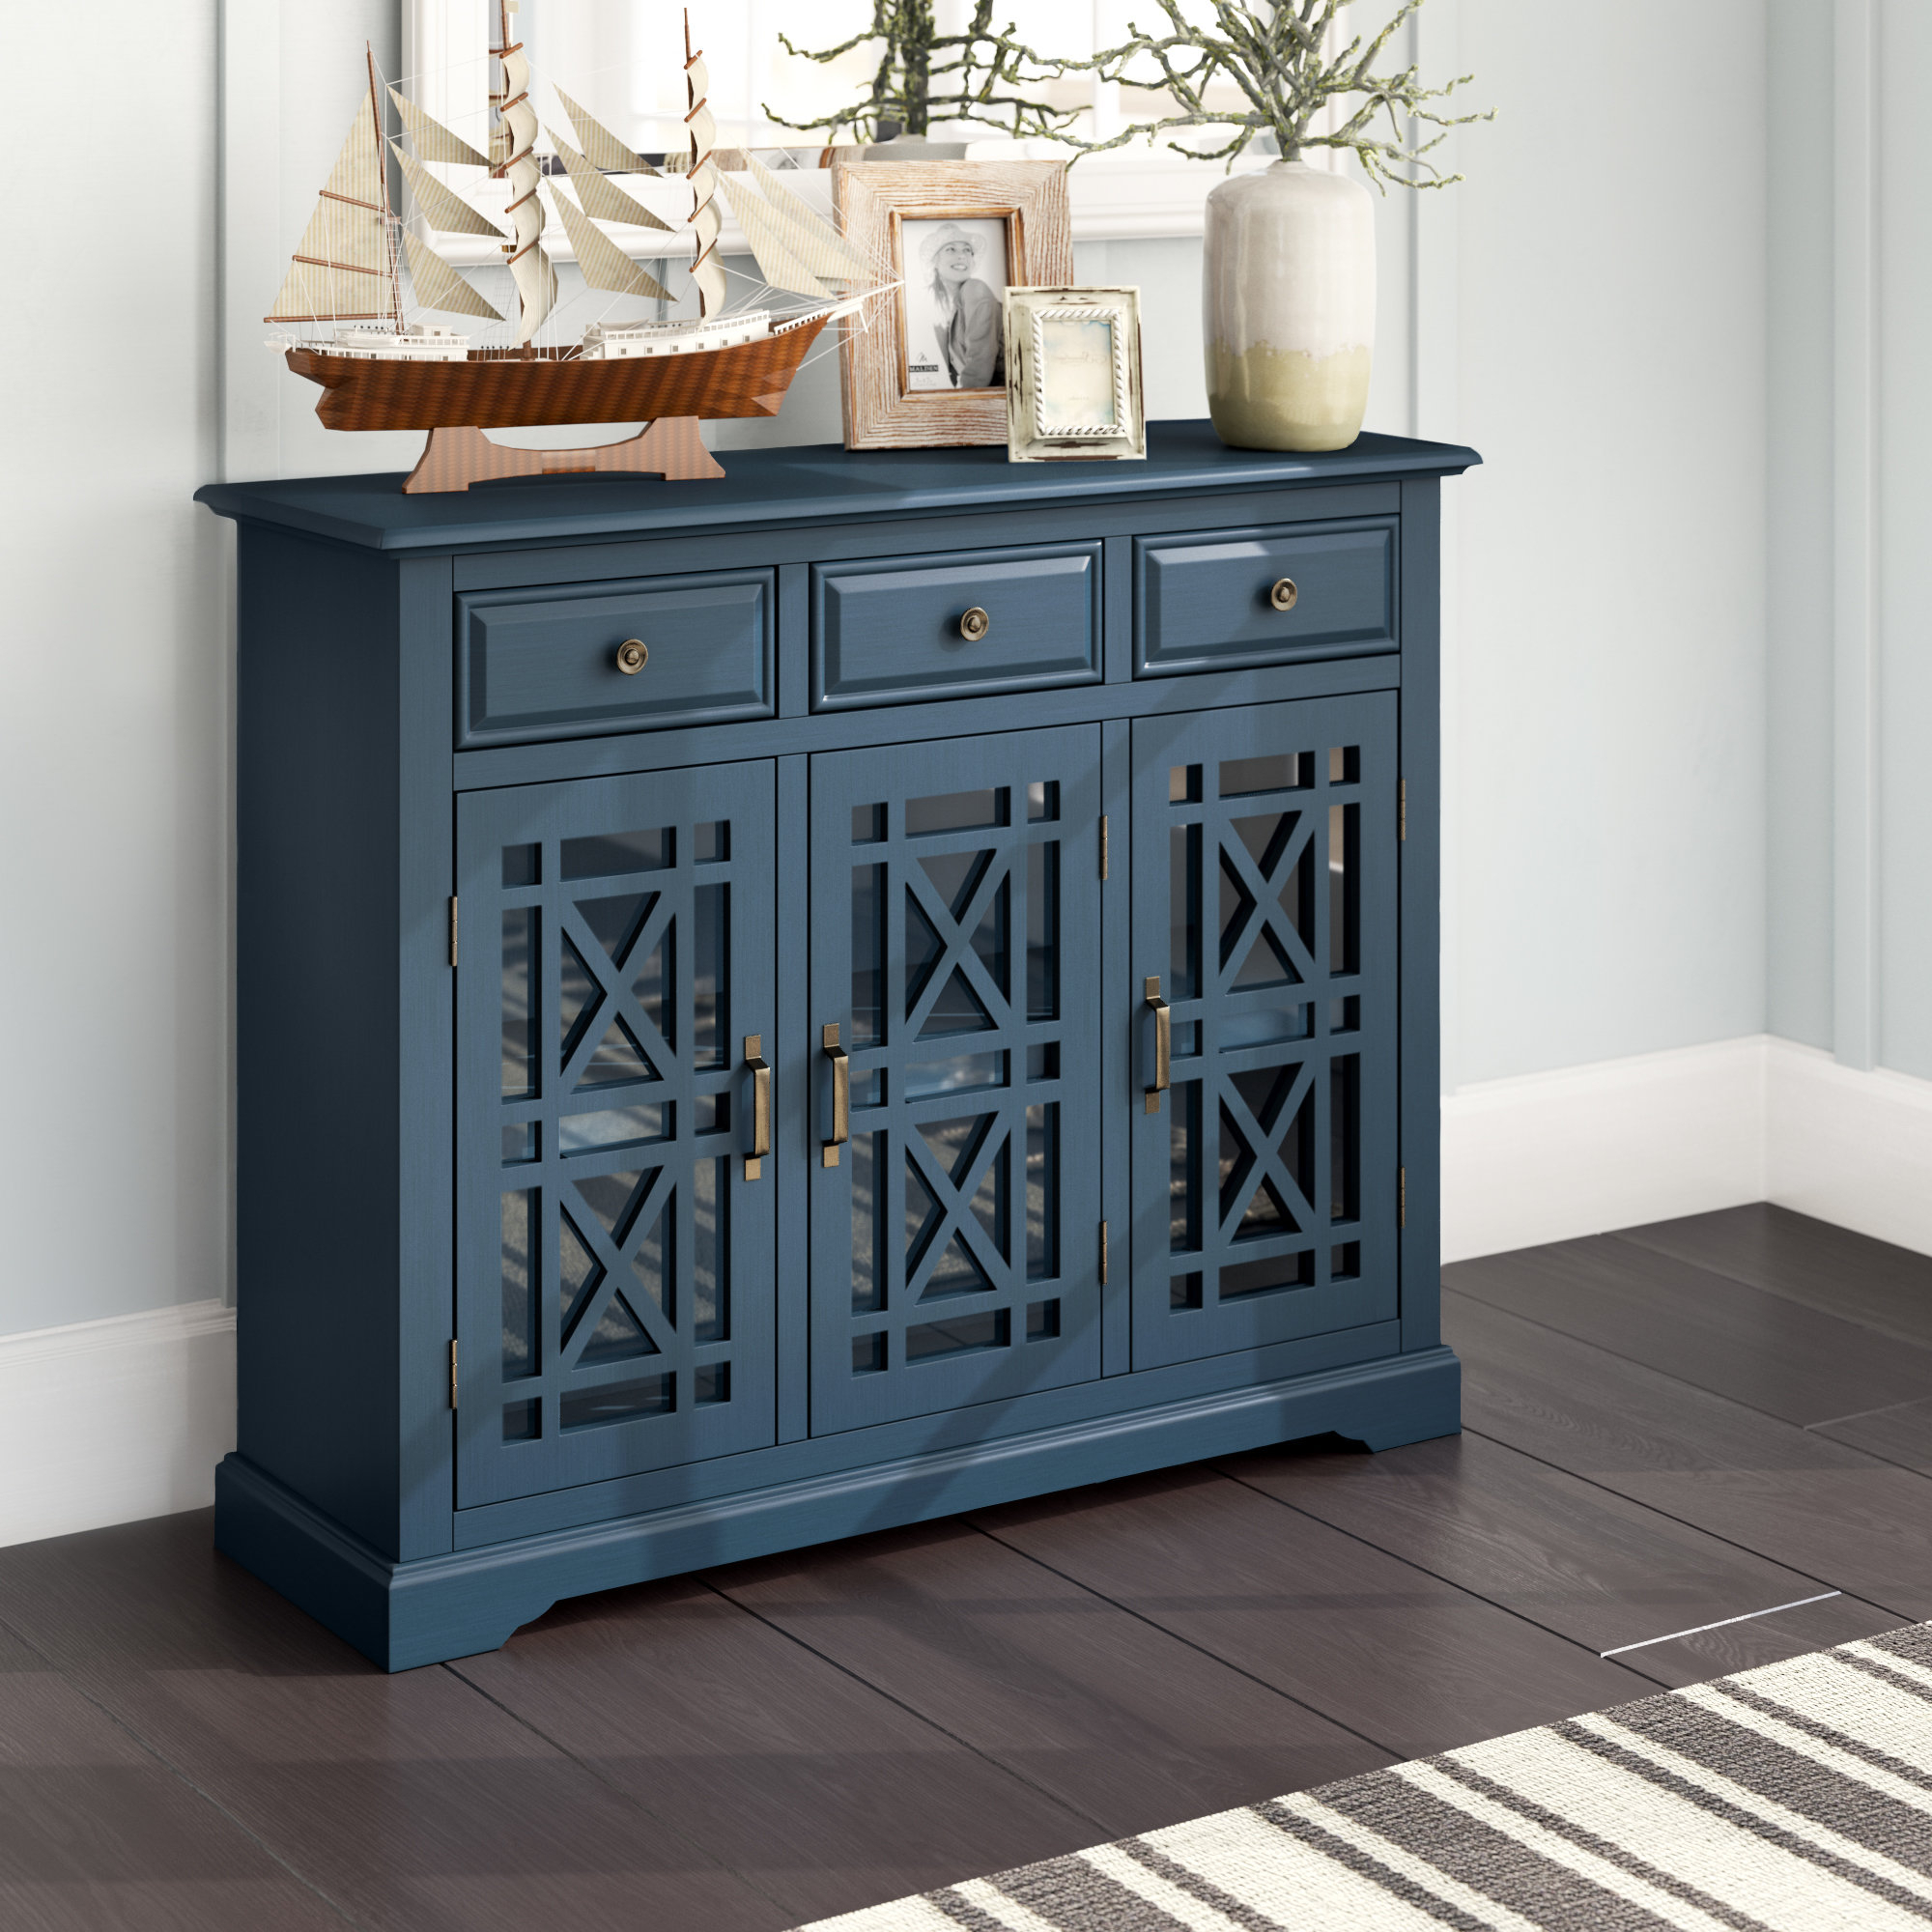 Sideboards & Buffet Tables You'll Love In 2019 | Wayfair Throughout Emmaline Sideboards (View 15 of 20)